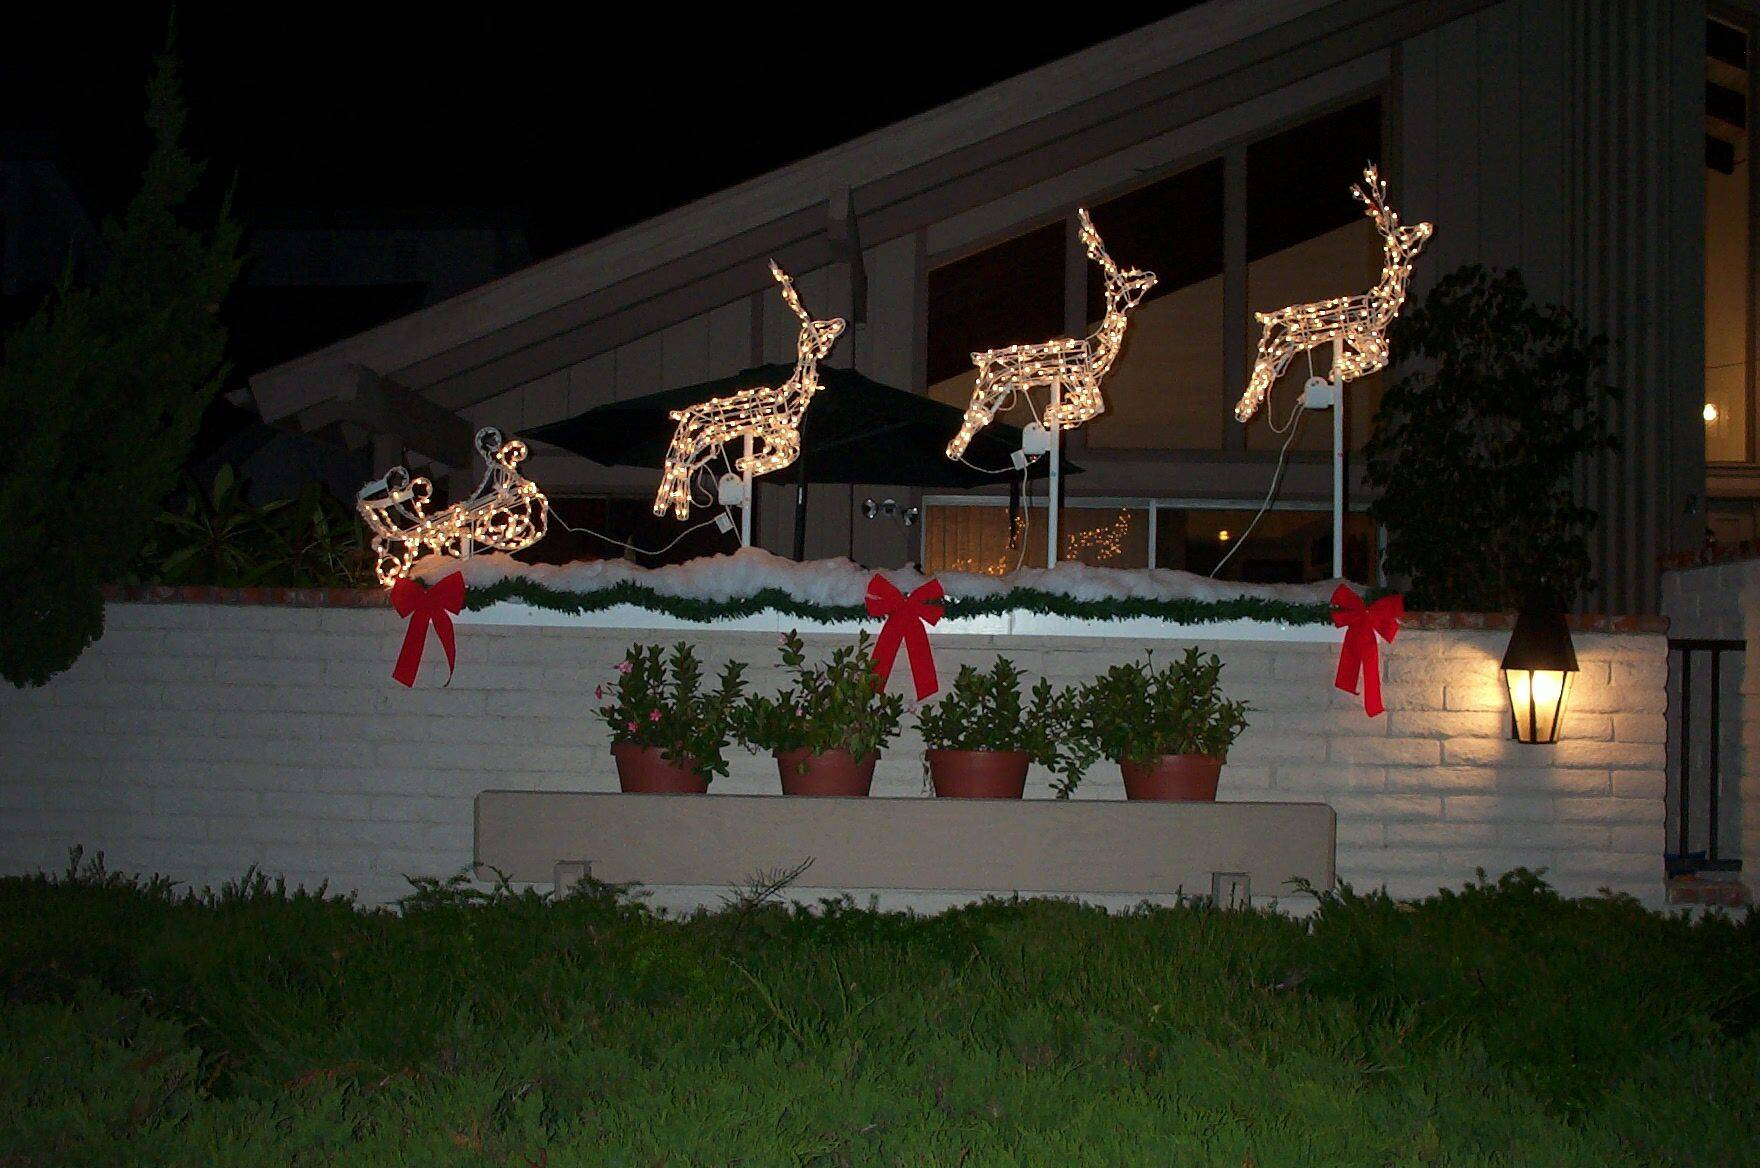 Outdoor Christmas Decorations Sale  20 Outdoor Christmas Decorations Ideas for this Year MagMent